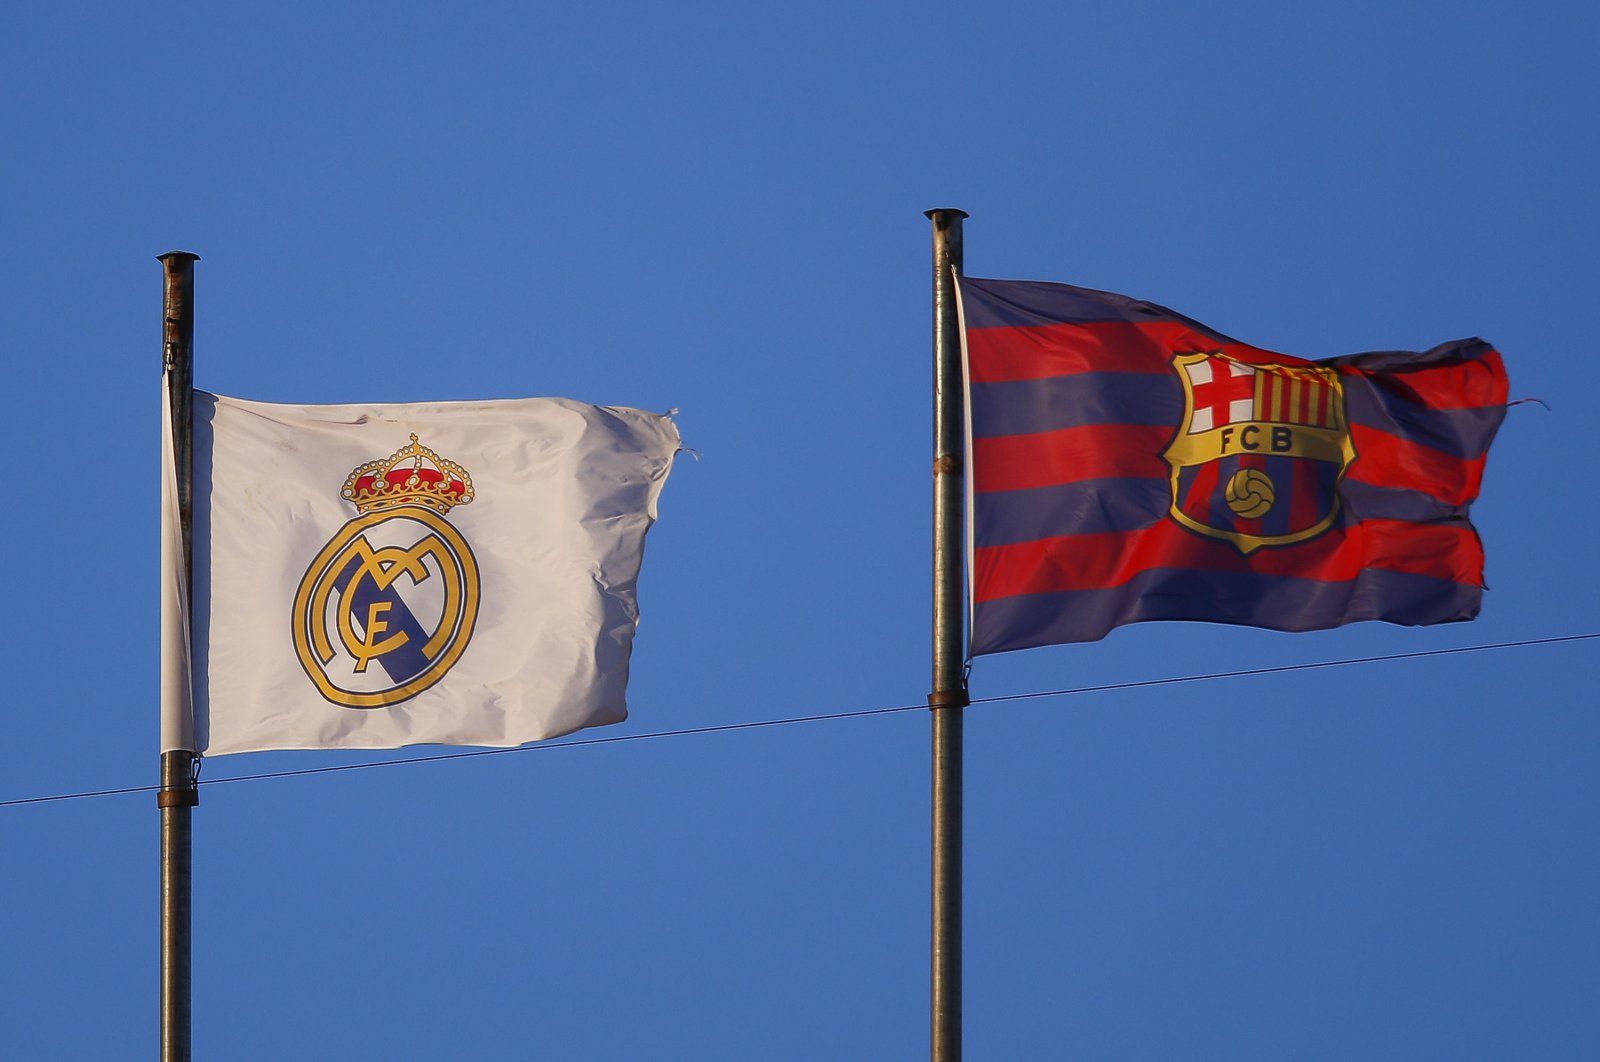 Real Madrid and FC Barcelona flags are seen during the La Liga Santander match between Valencia CF and Elche CF at Estadio Mestalla, in Valencia, Spain, Jan. 30, 2021. (Getty Images)